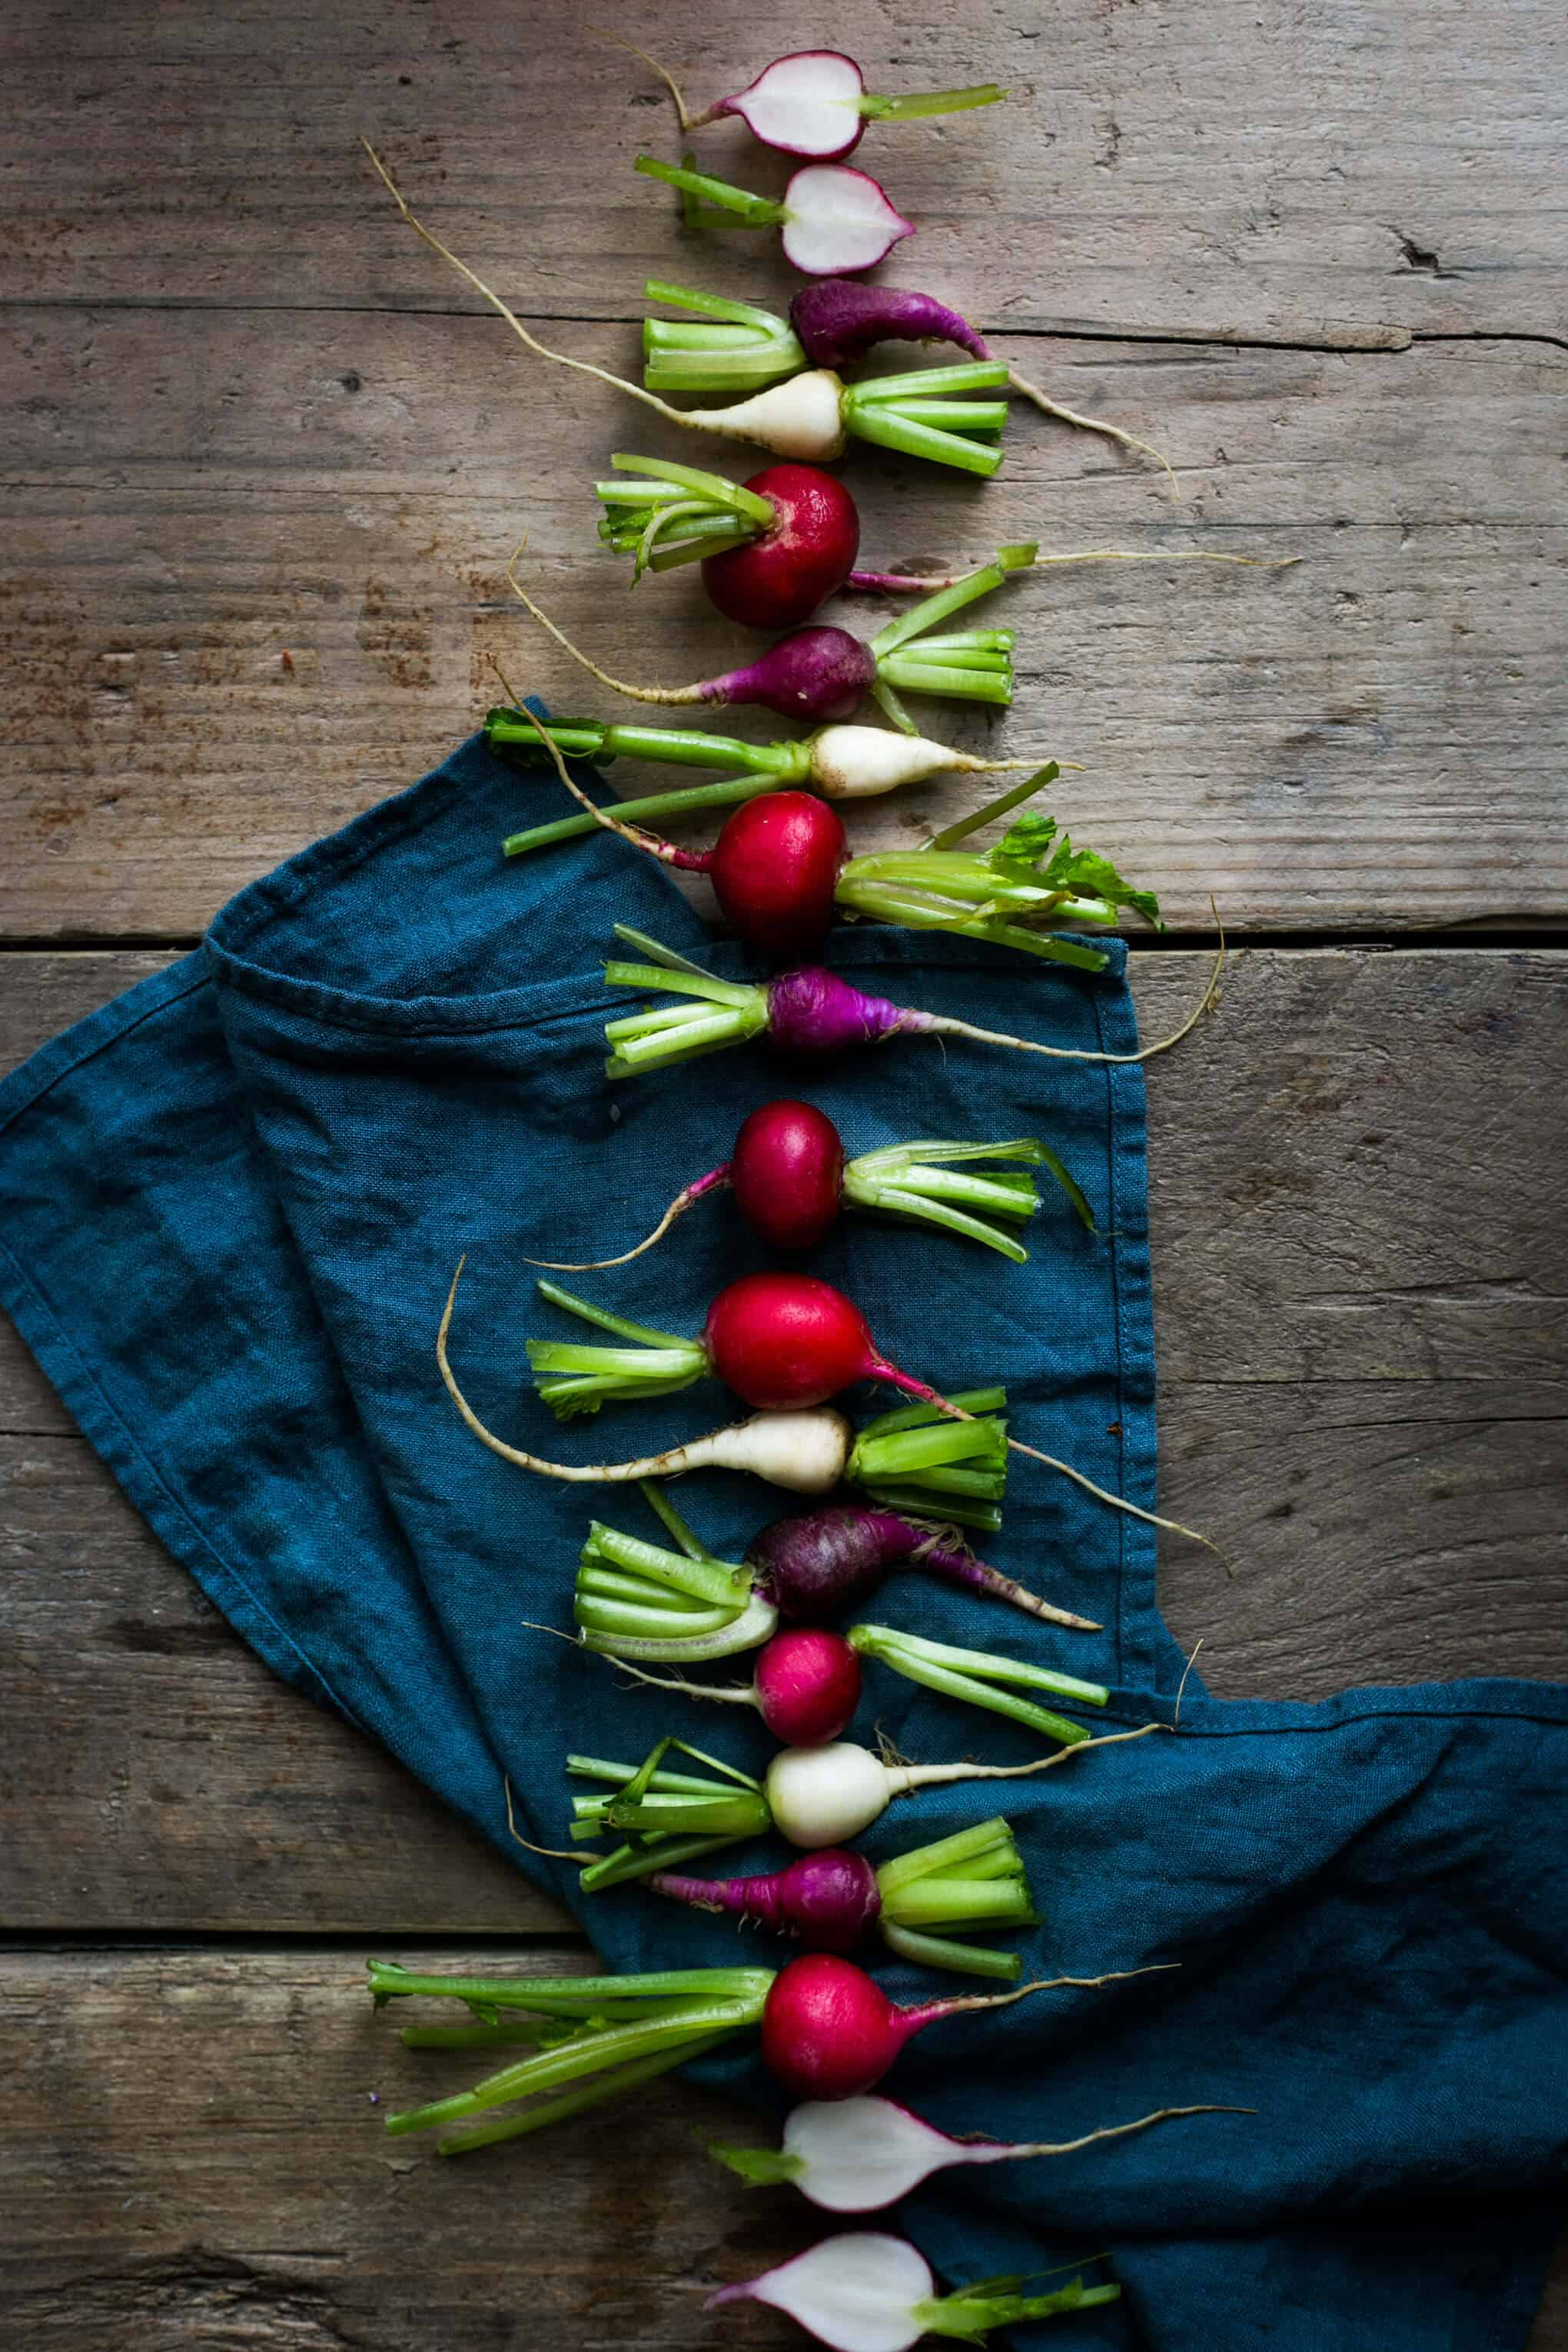 Breakfast Radishes | Food Photography Tips For Beginners- Bonus Material! Sign up now and receive a mini- series full of handy tips! | via @annabanana.co